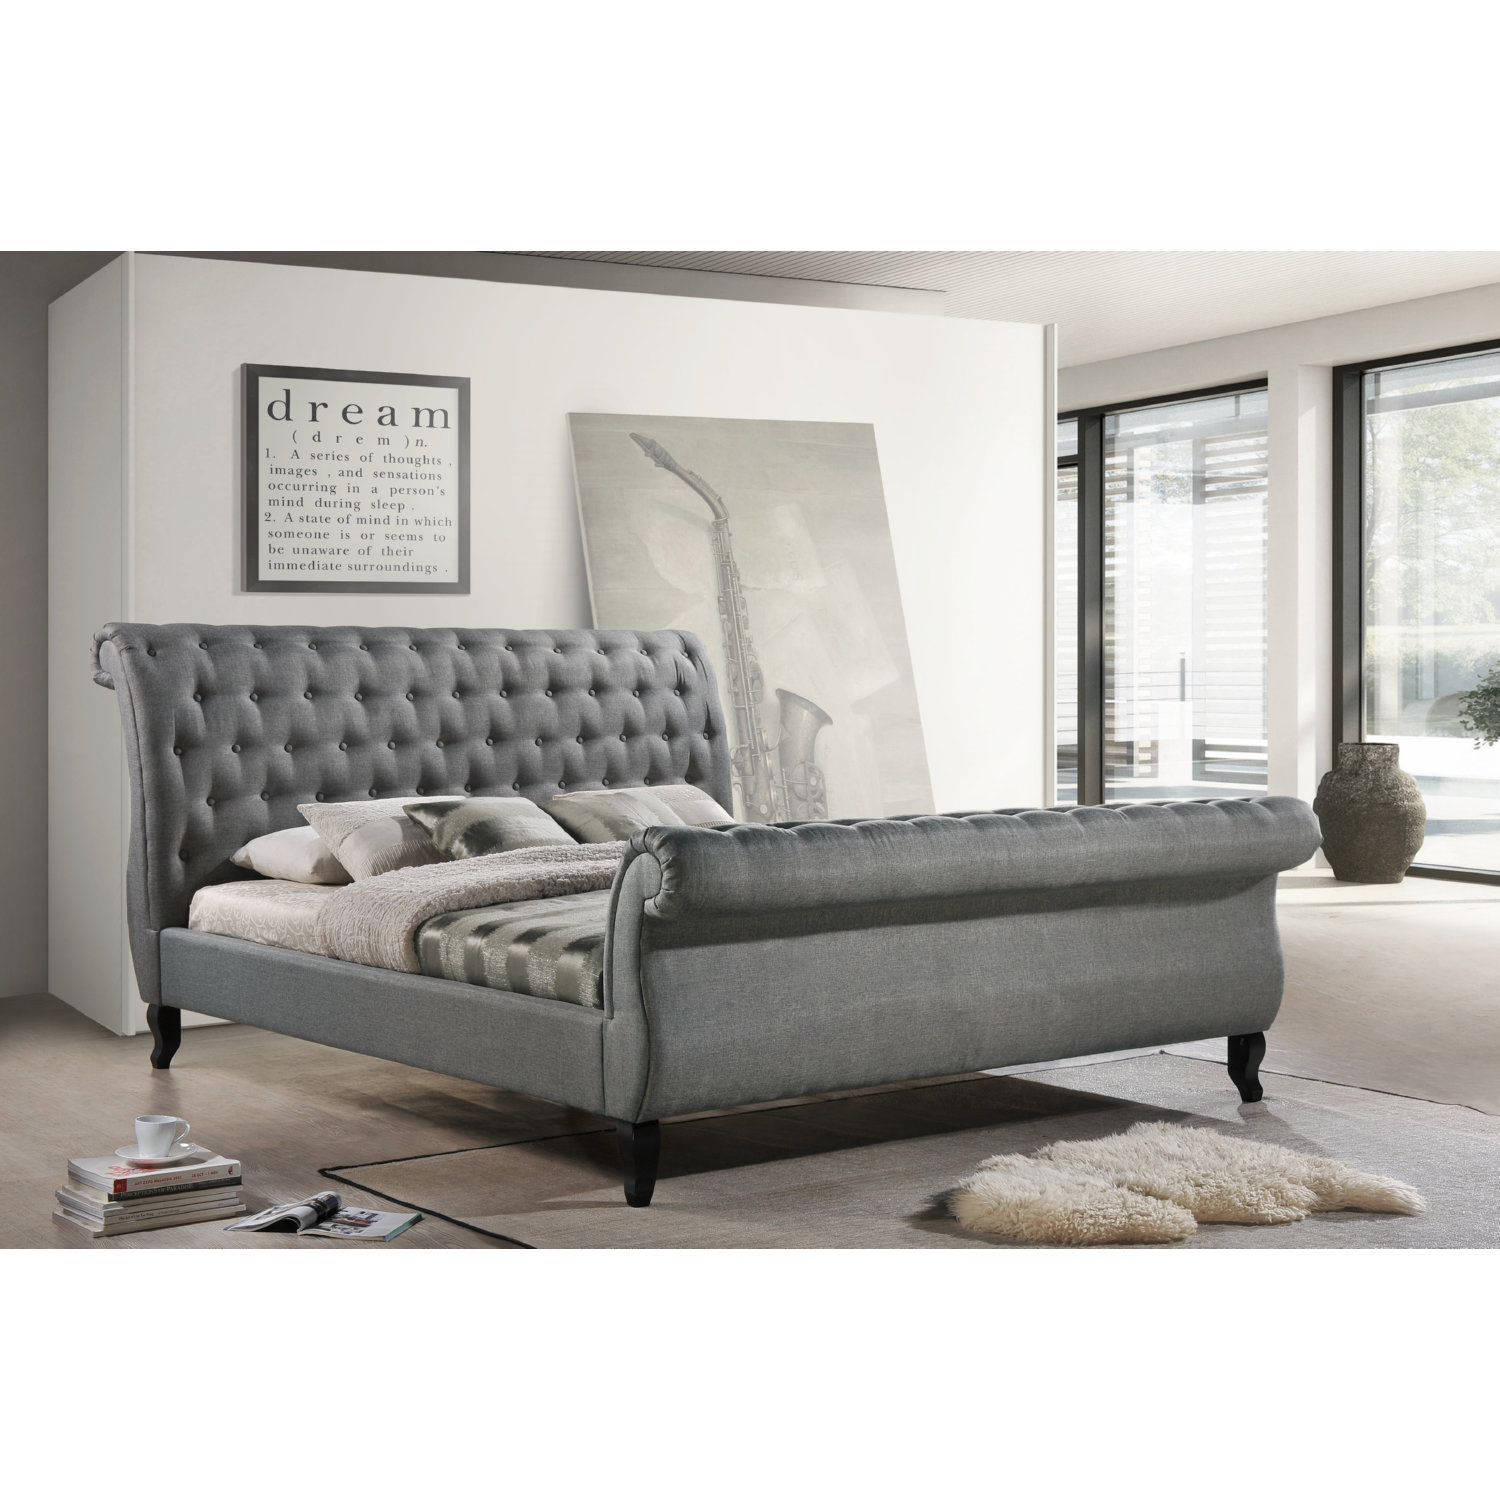 luxeo home furnishings nottingham king diamond tufted sleigh upholstered platform sleigh bed in gray fabric